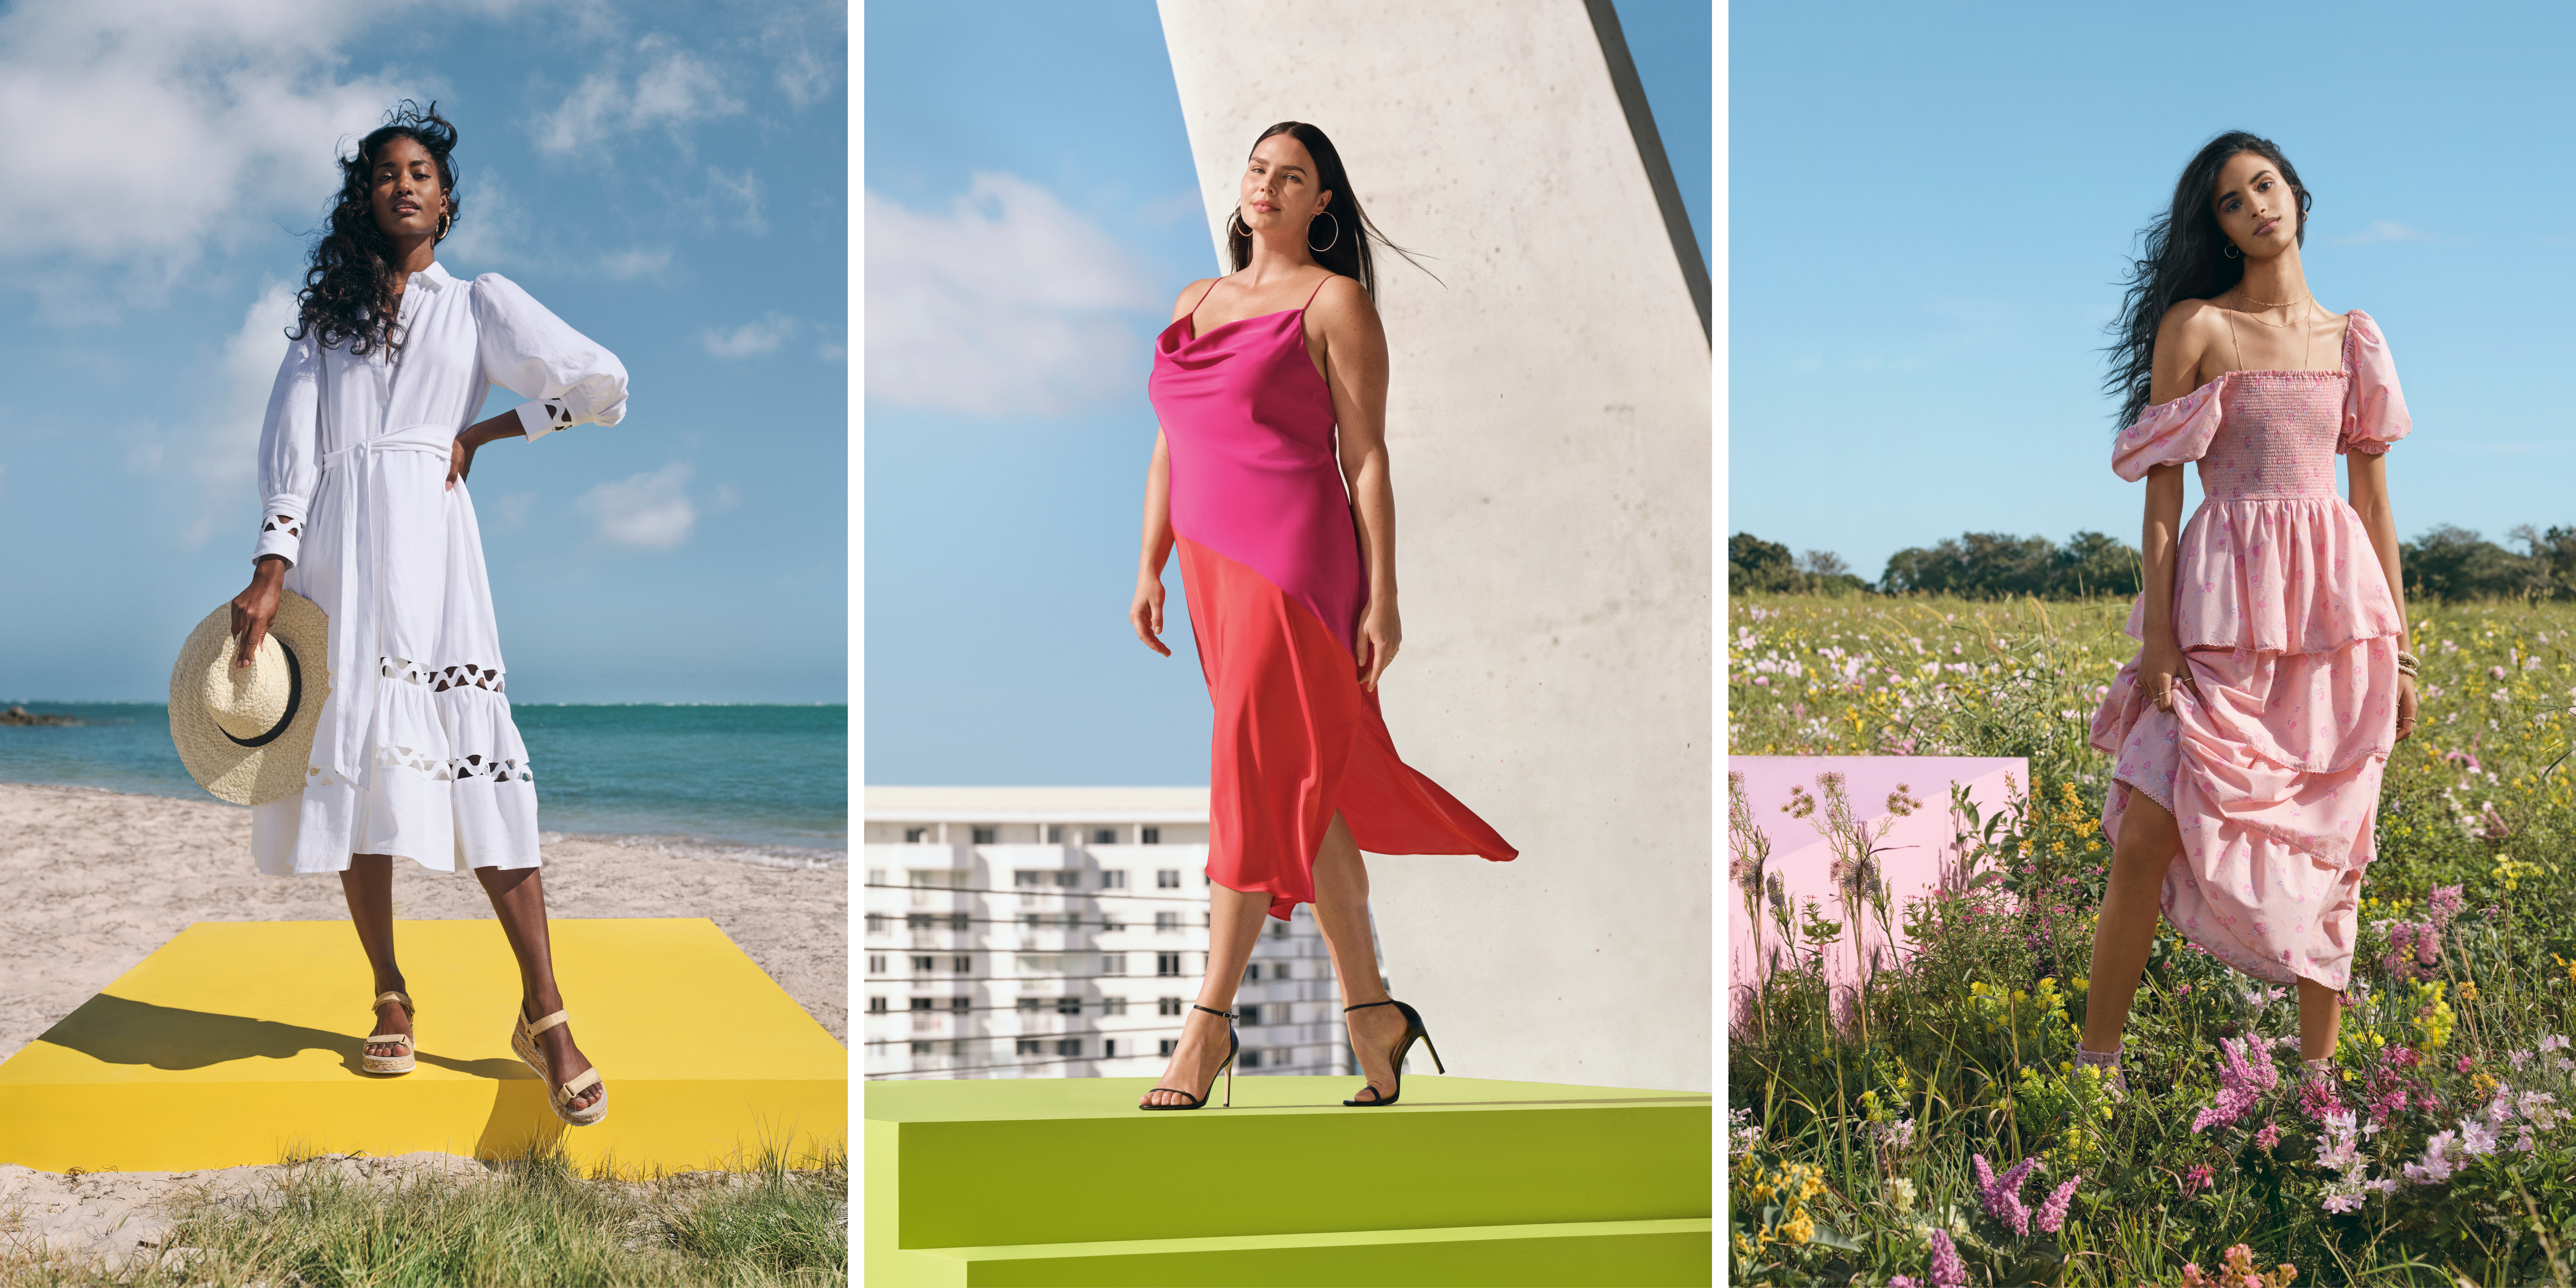 collage of three women in colorful dresses in different places (field, city, beach)